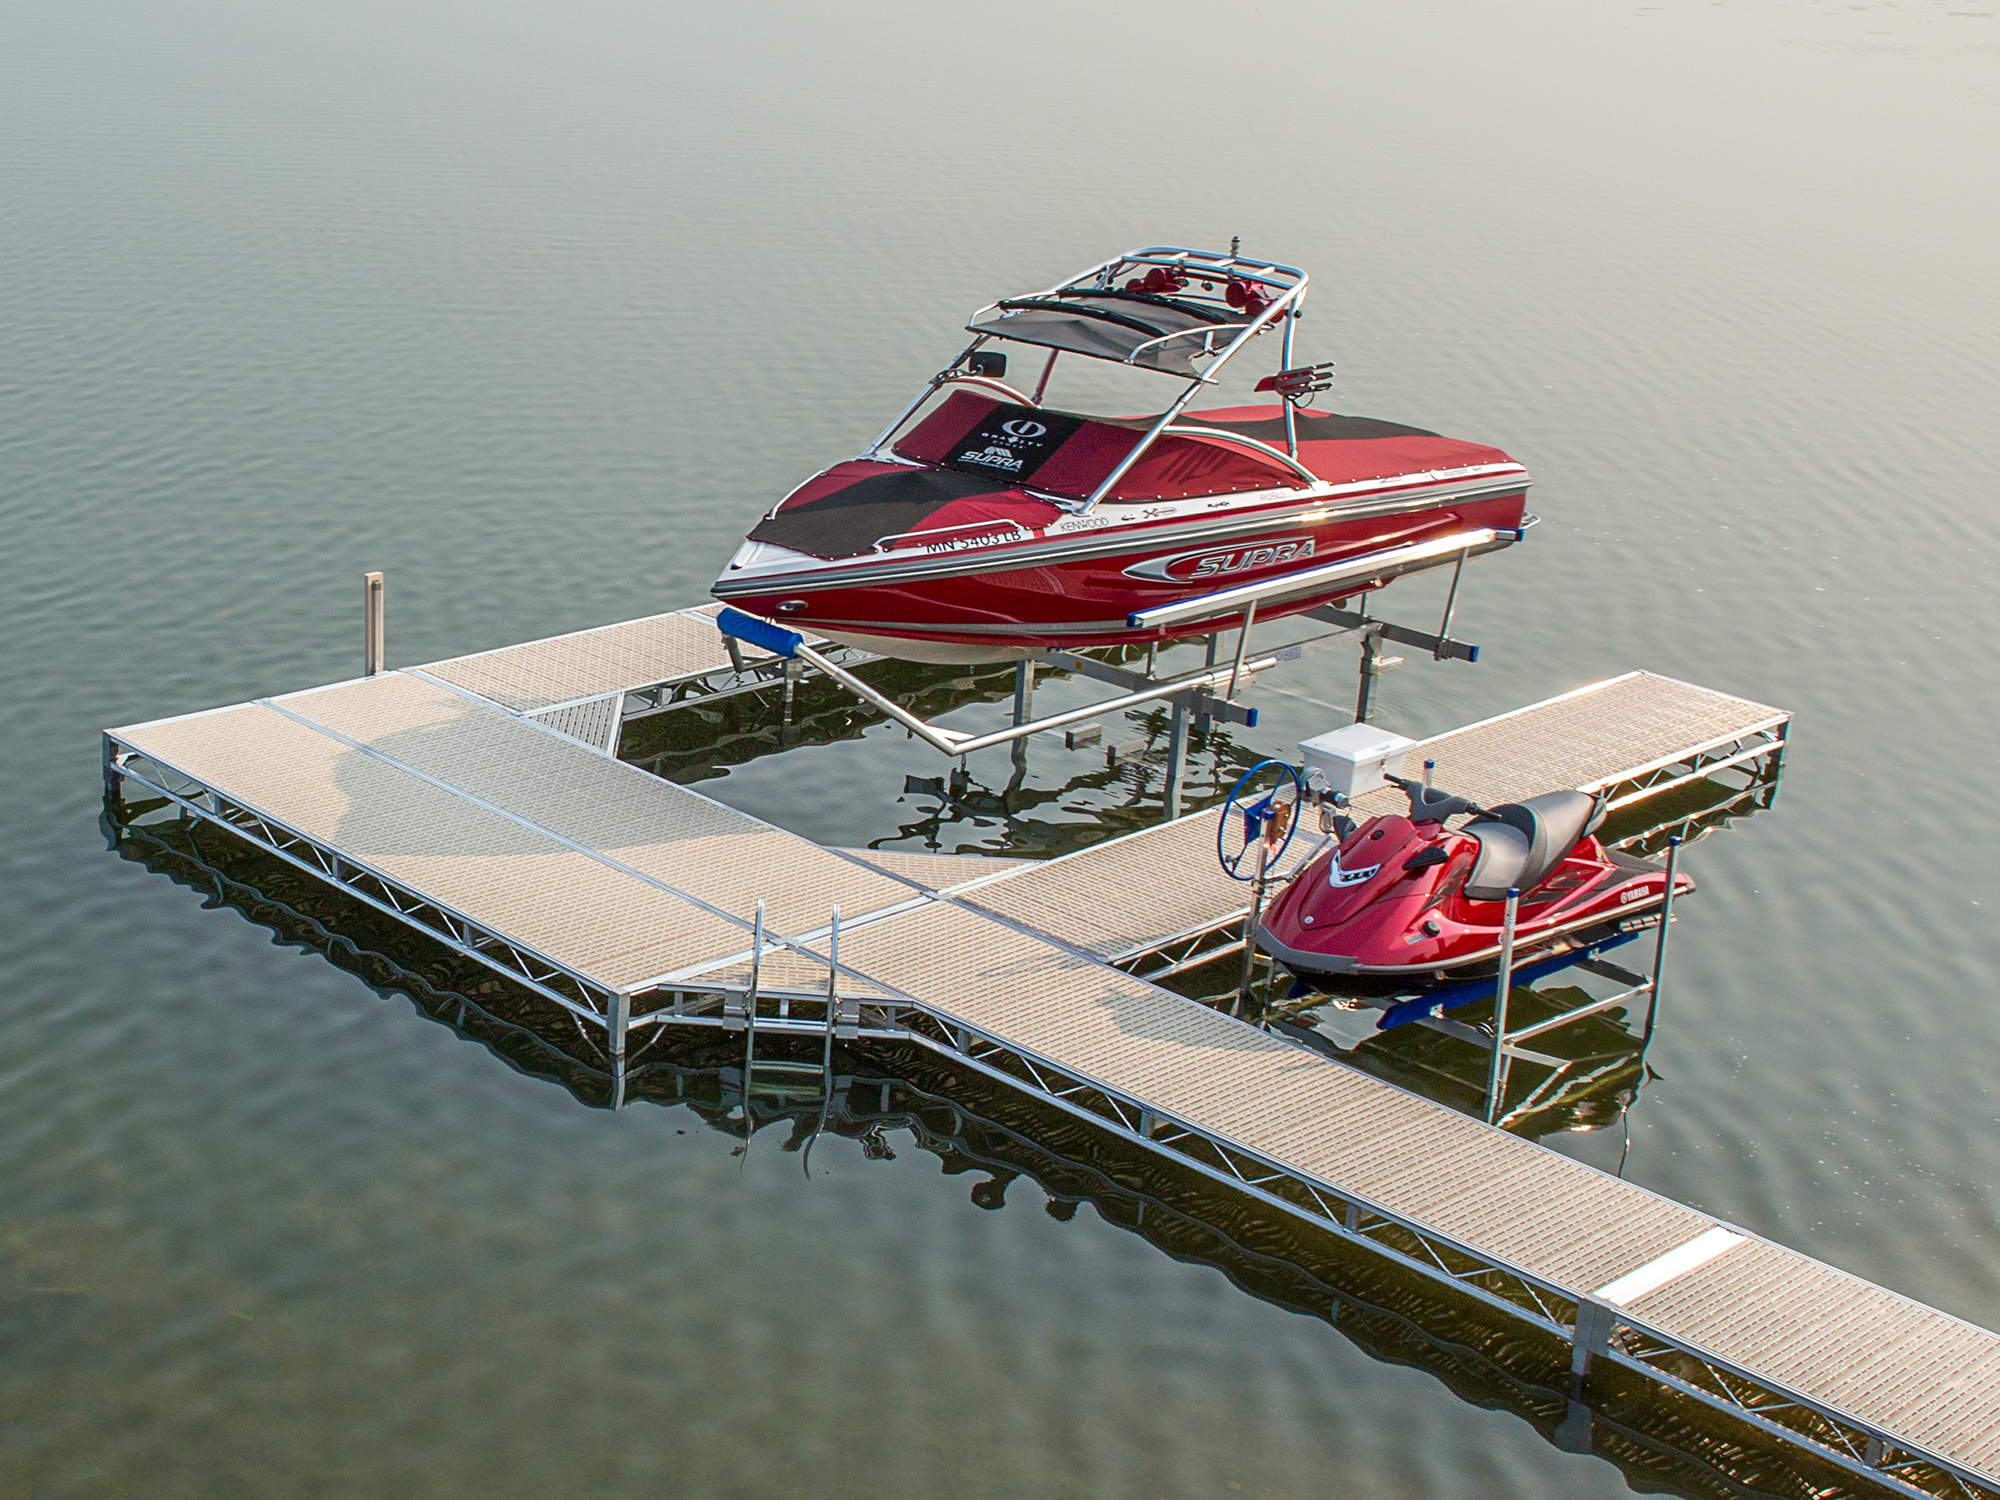 ShoreMaster Infinity TS9 Dock with Hydraulic Lift, PWC Lift and Tan Flow Through Decking